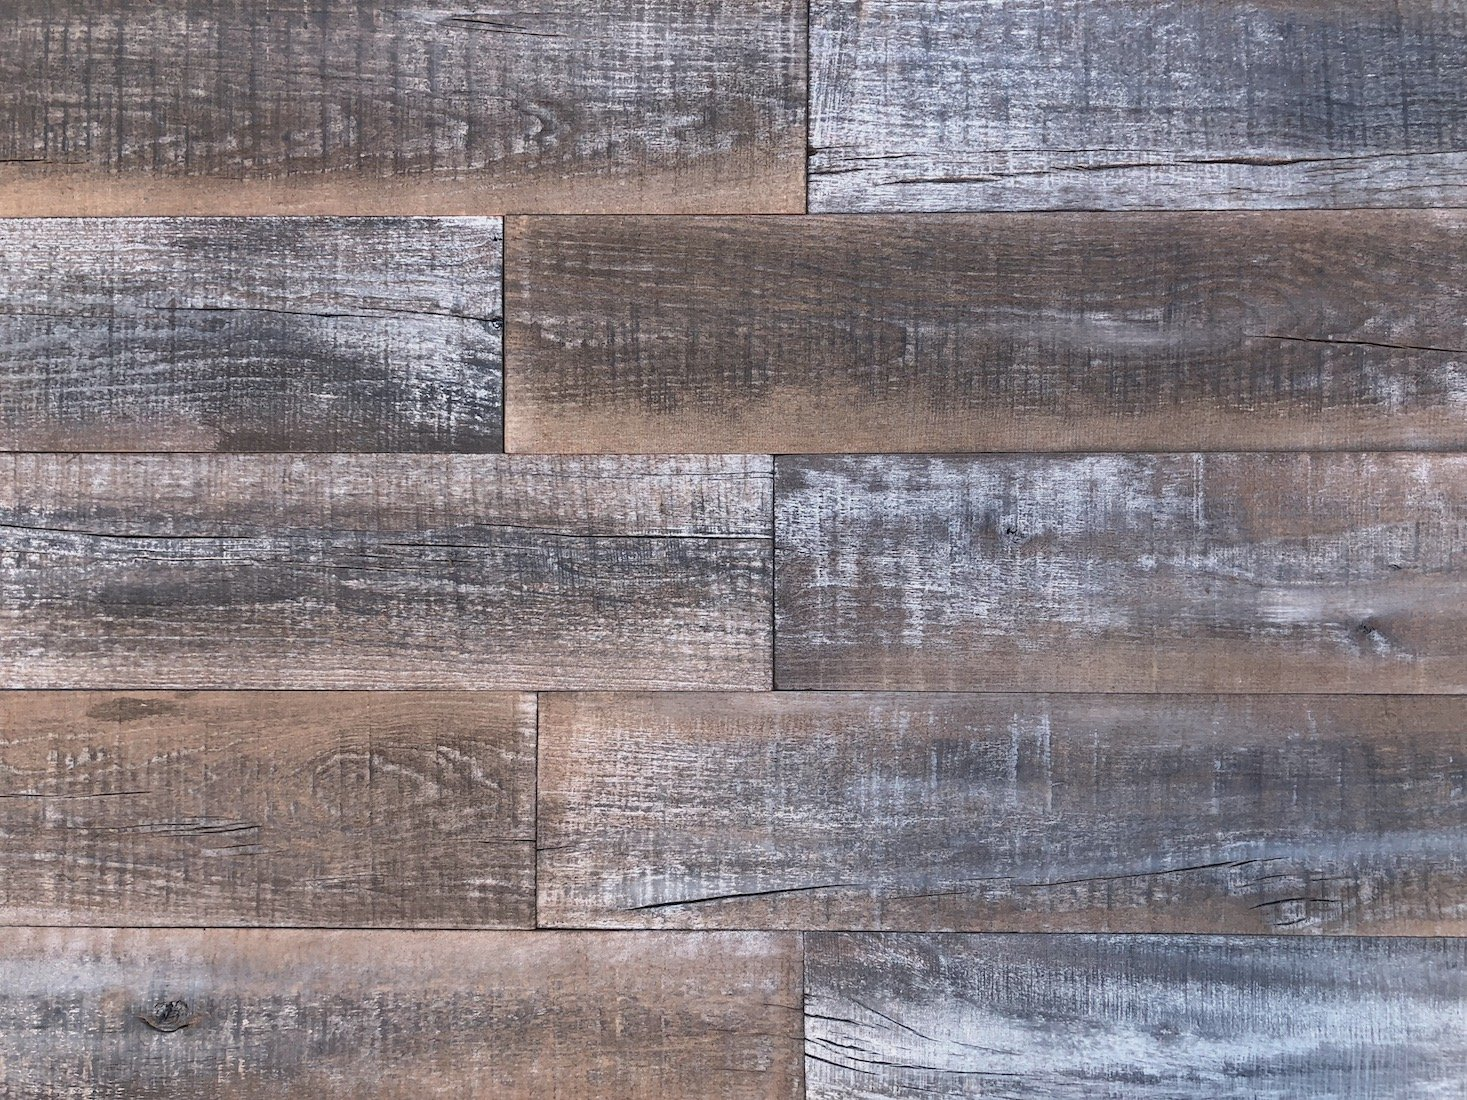 Smart Paneling SPAN521 Antique Wall Plank Wood Molding, Gray Holey Wood Studio